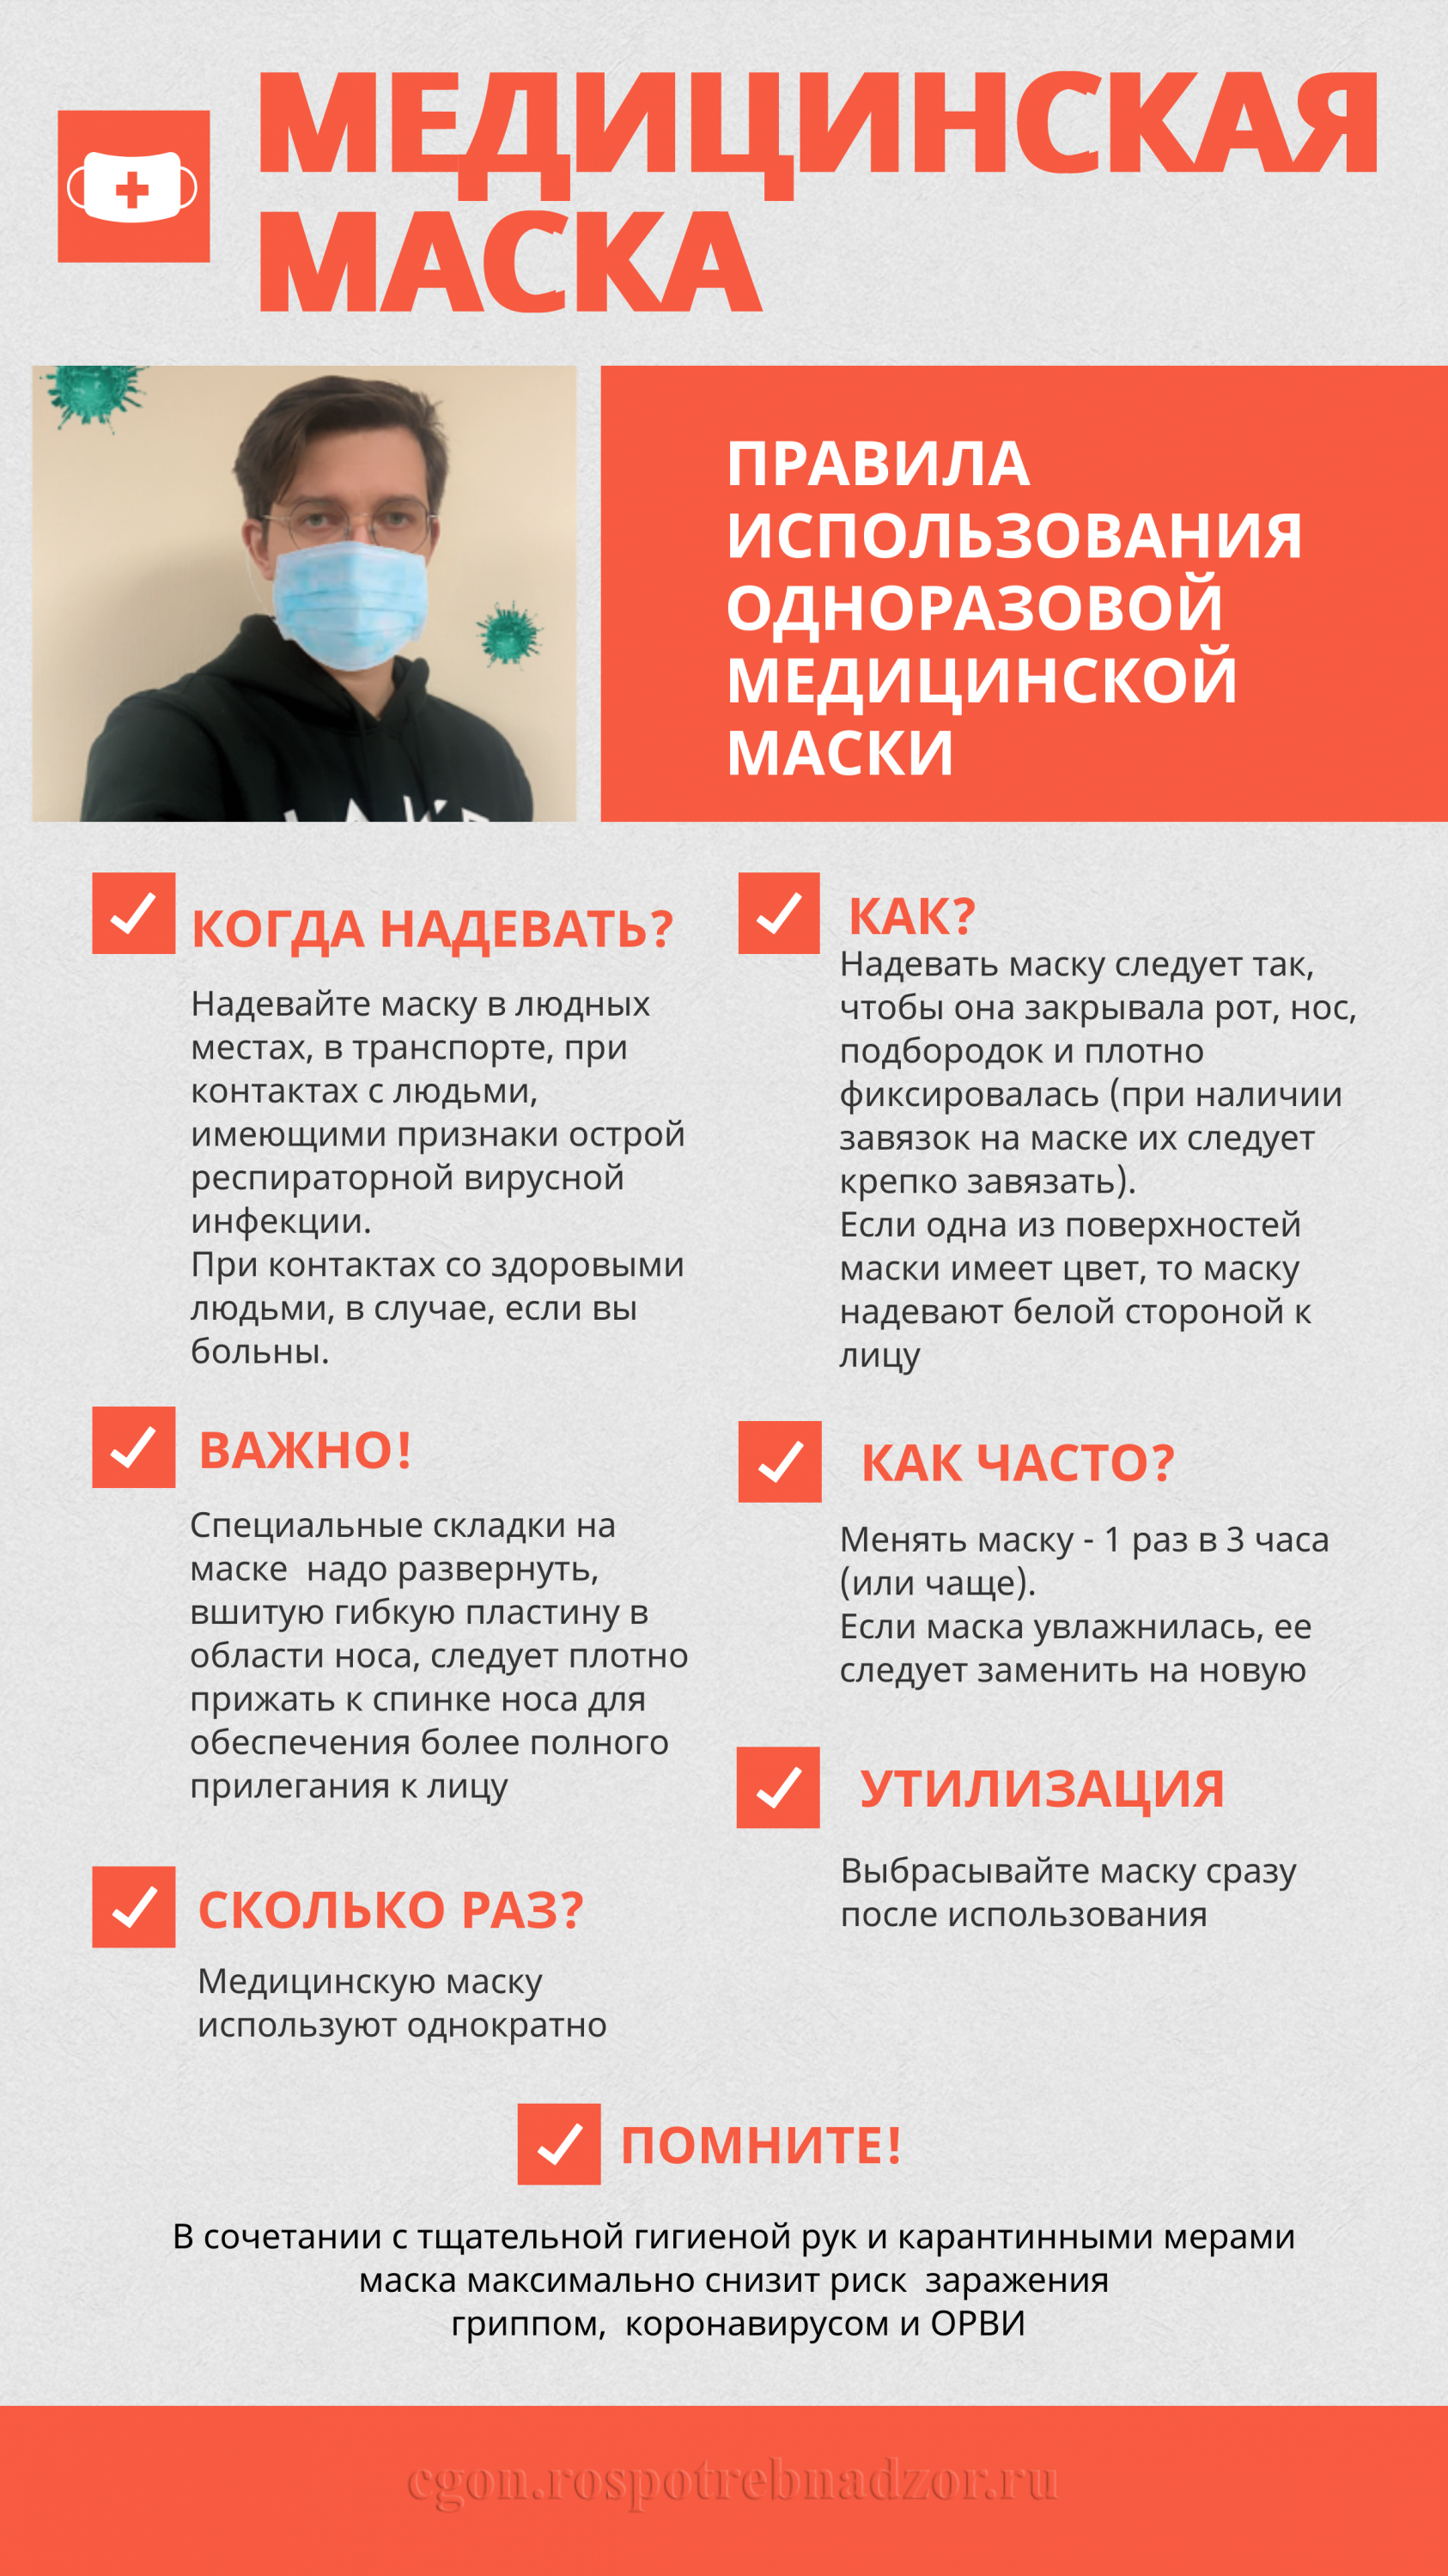 http://shkola-i-my.ucoz.ru/SLUZHBI_OO/b78803c99b4f628754e322d1207b5434.png